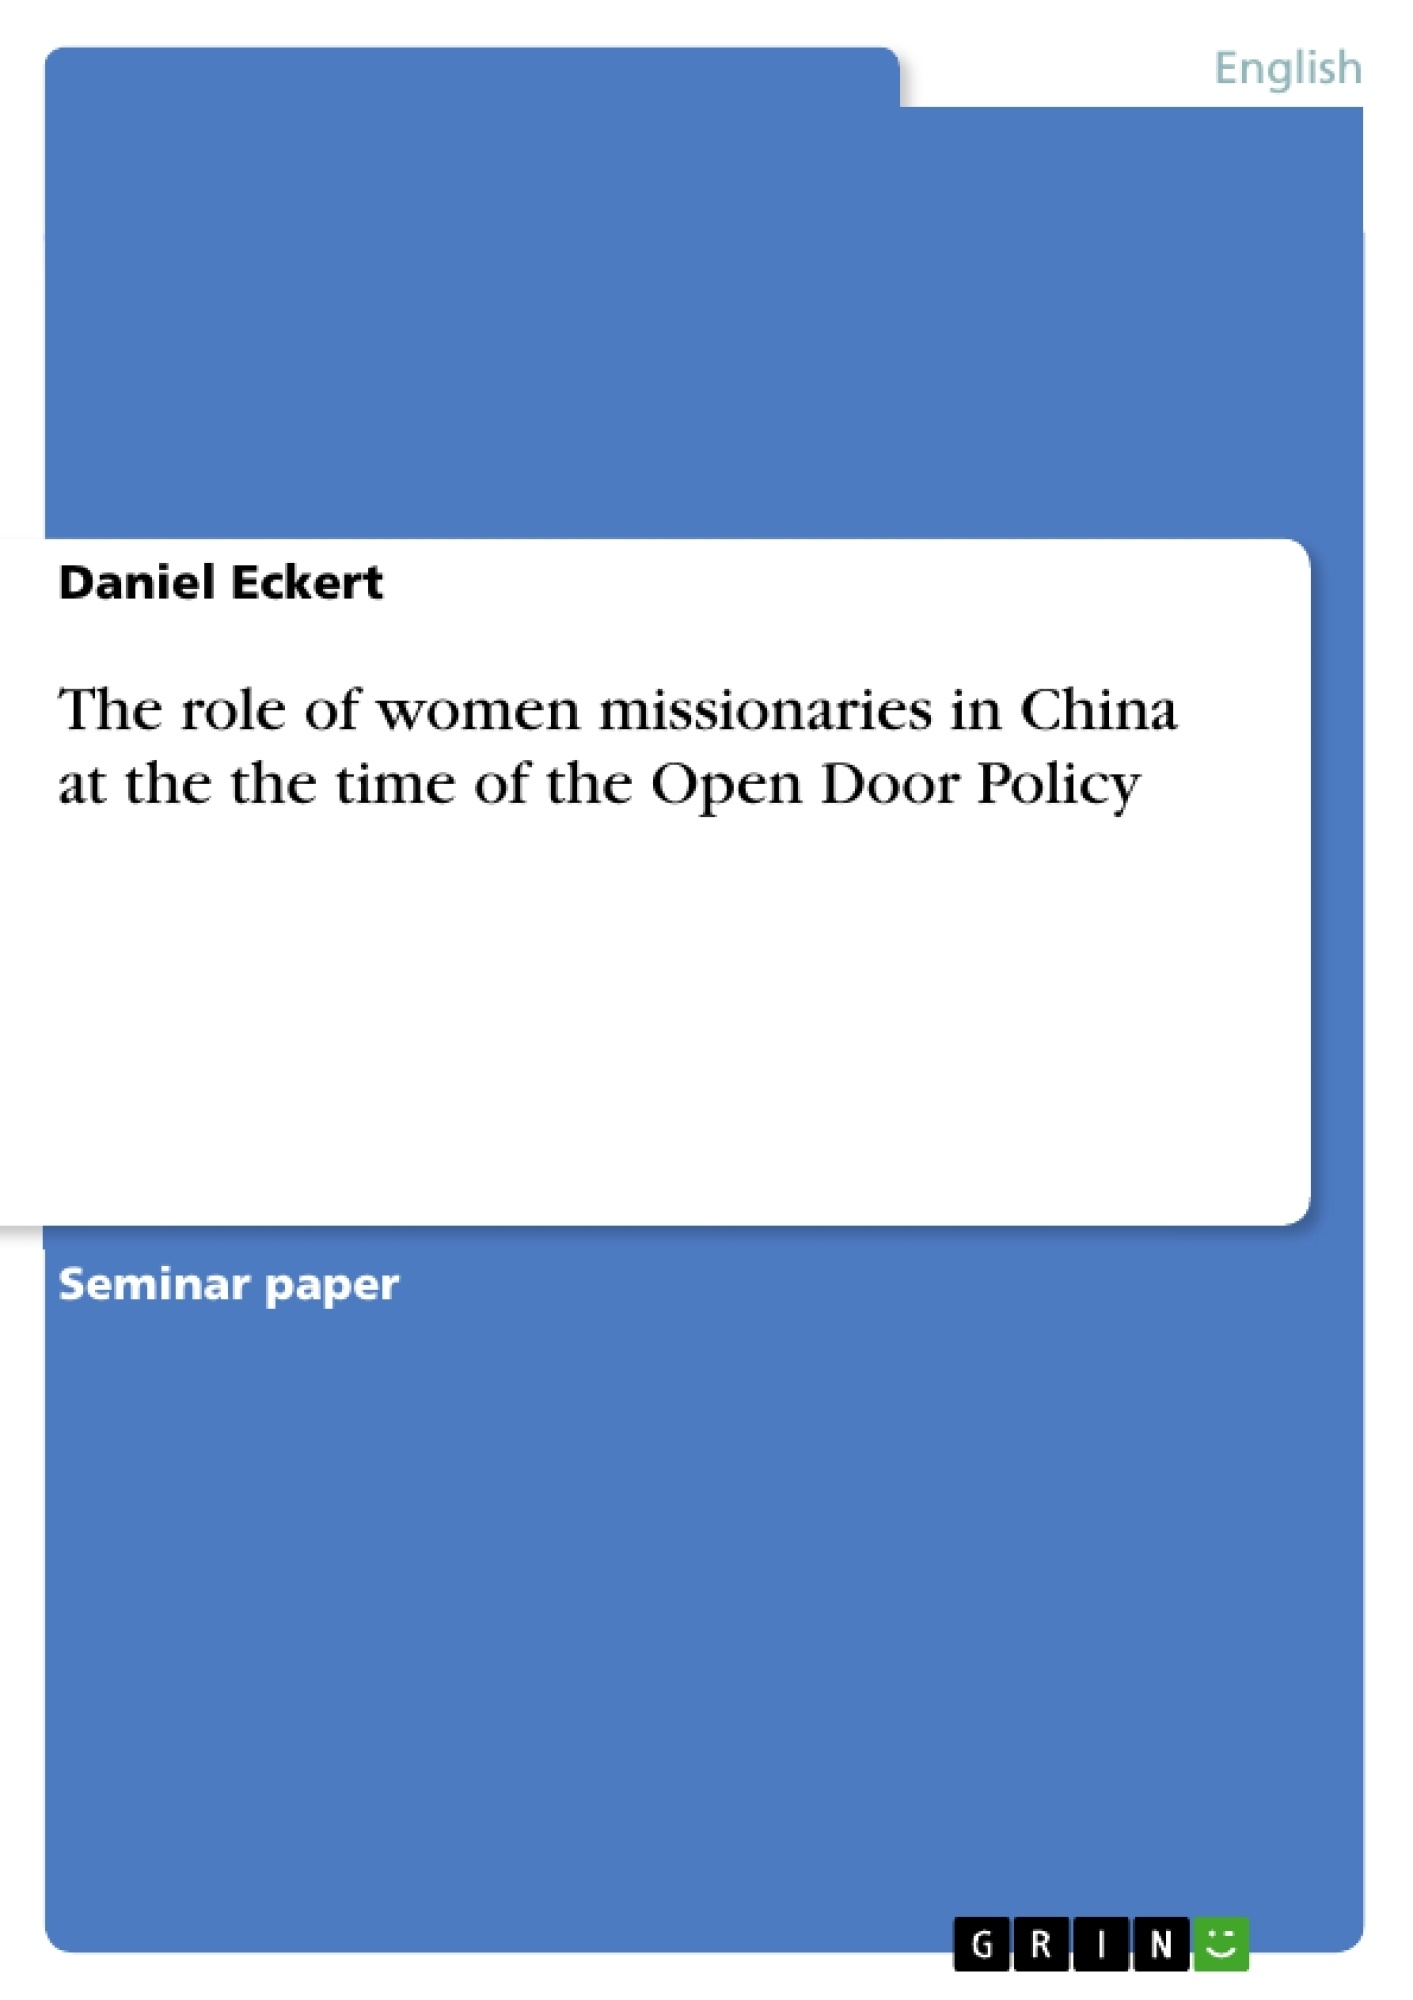 Title: The role of women missionaries in China at the the time of the Open Door Policy